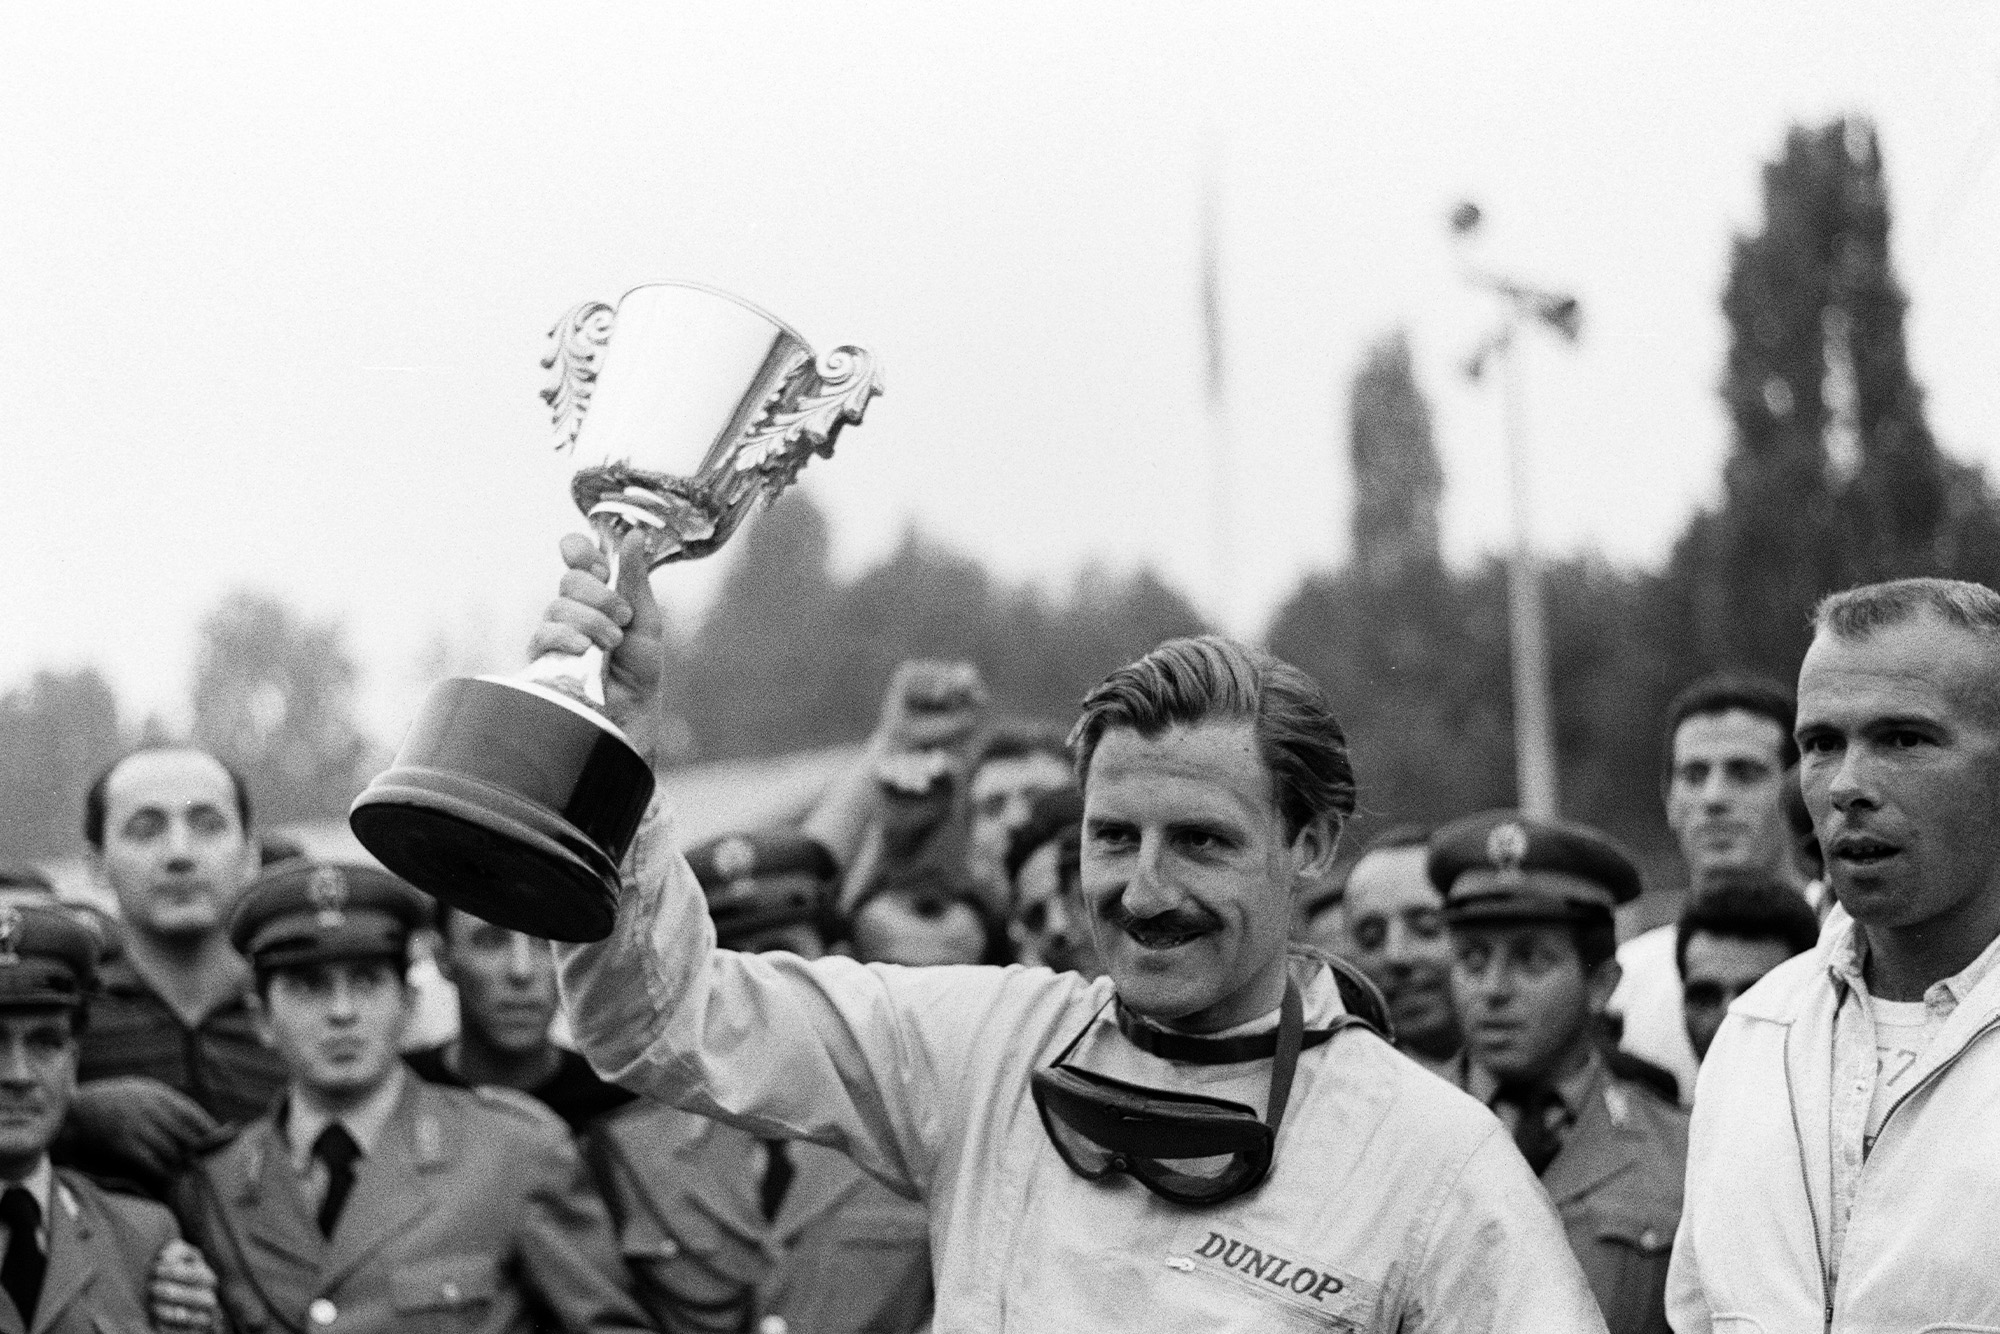 Hill lifts the winner's trophy for the third time that season